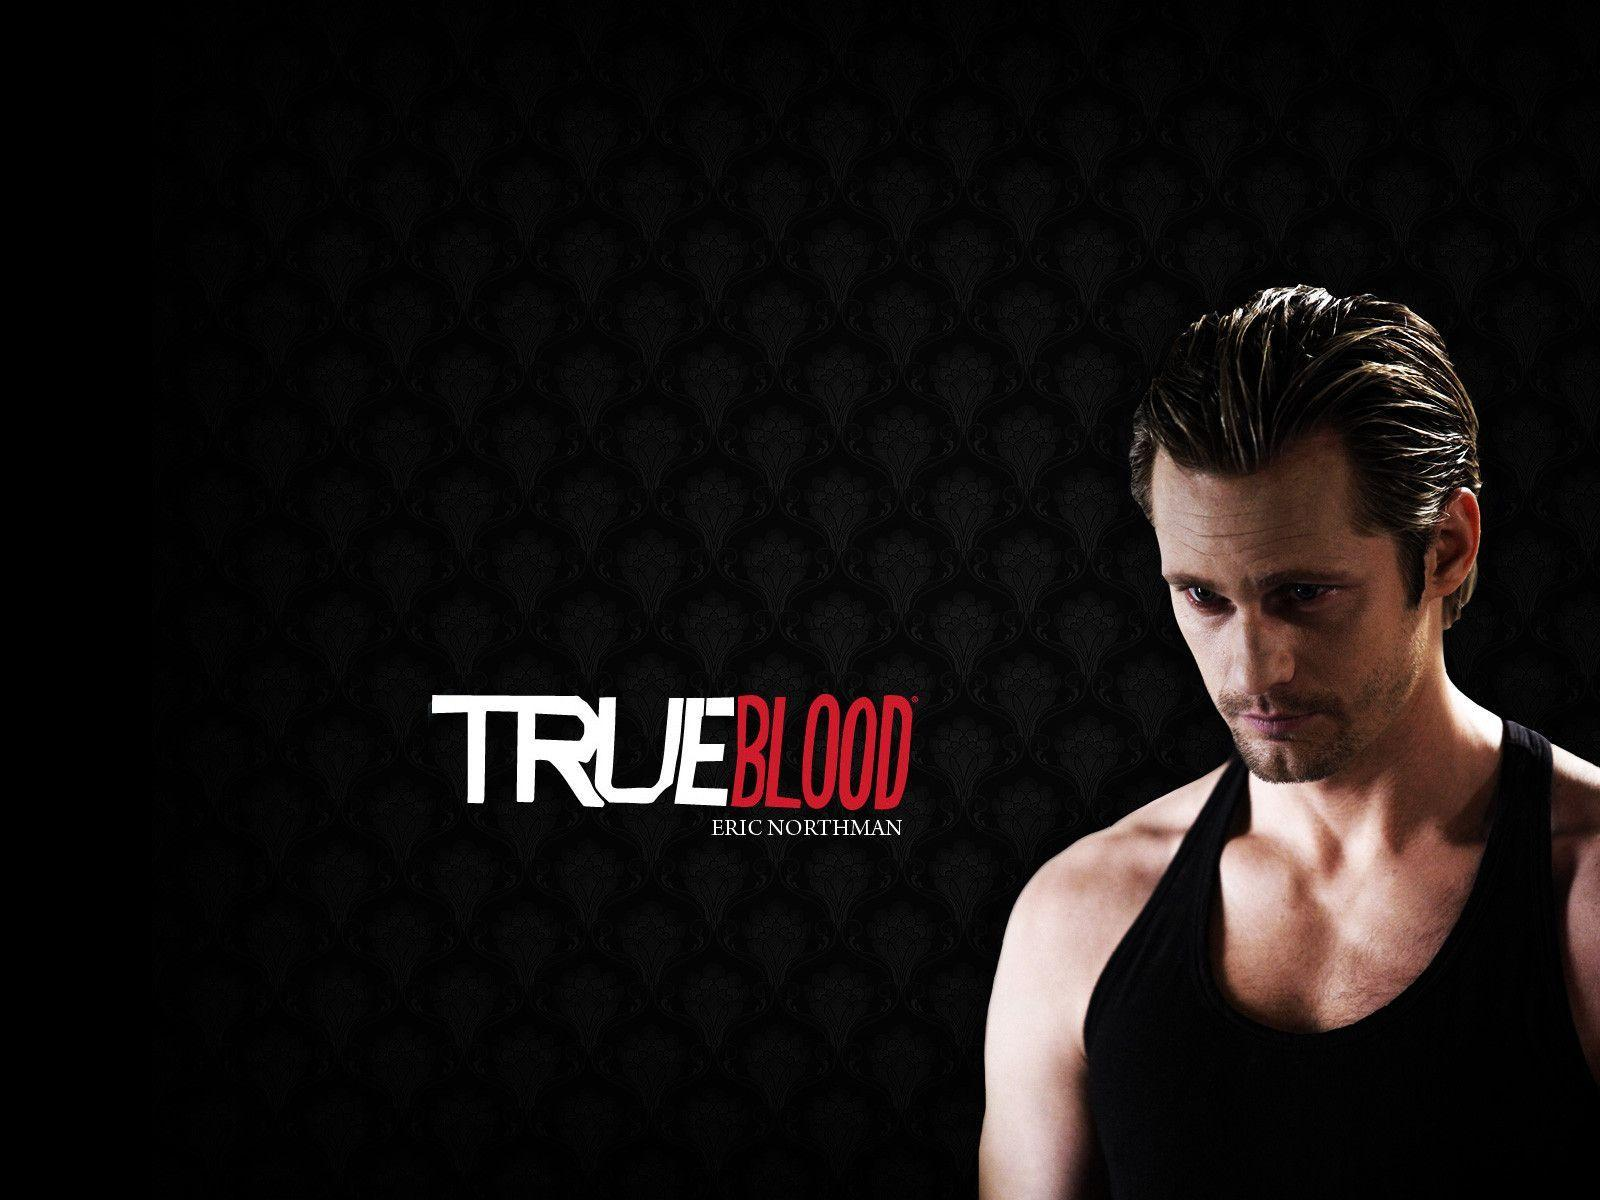 eric true blood wallpaper - photo #22